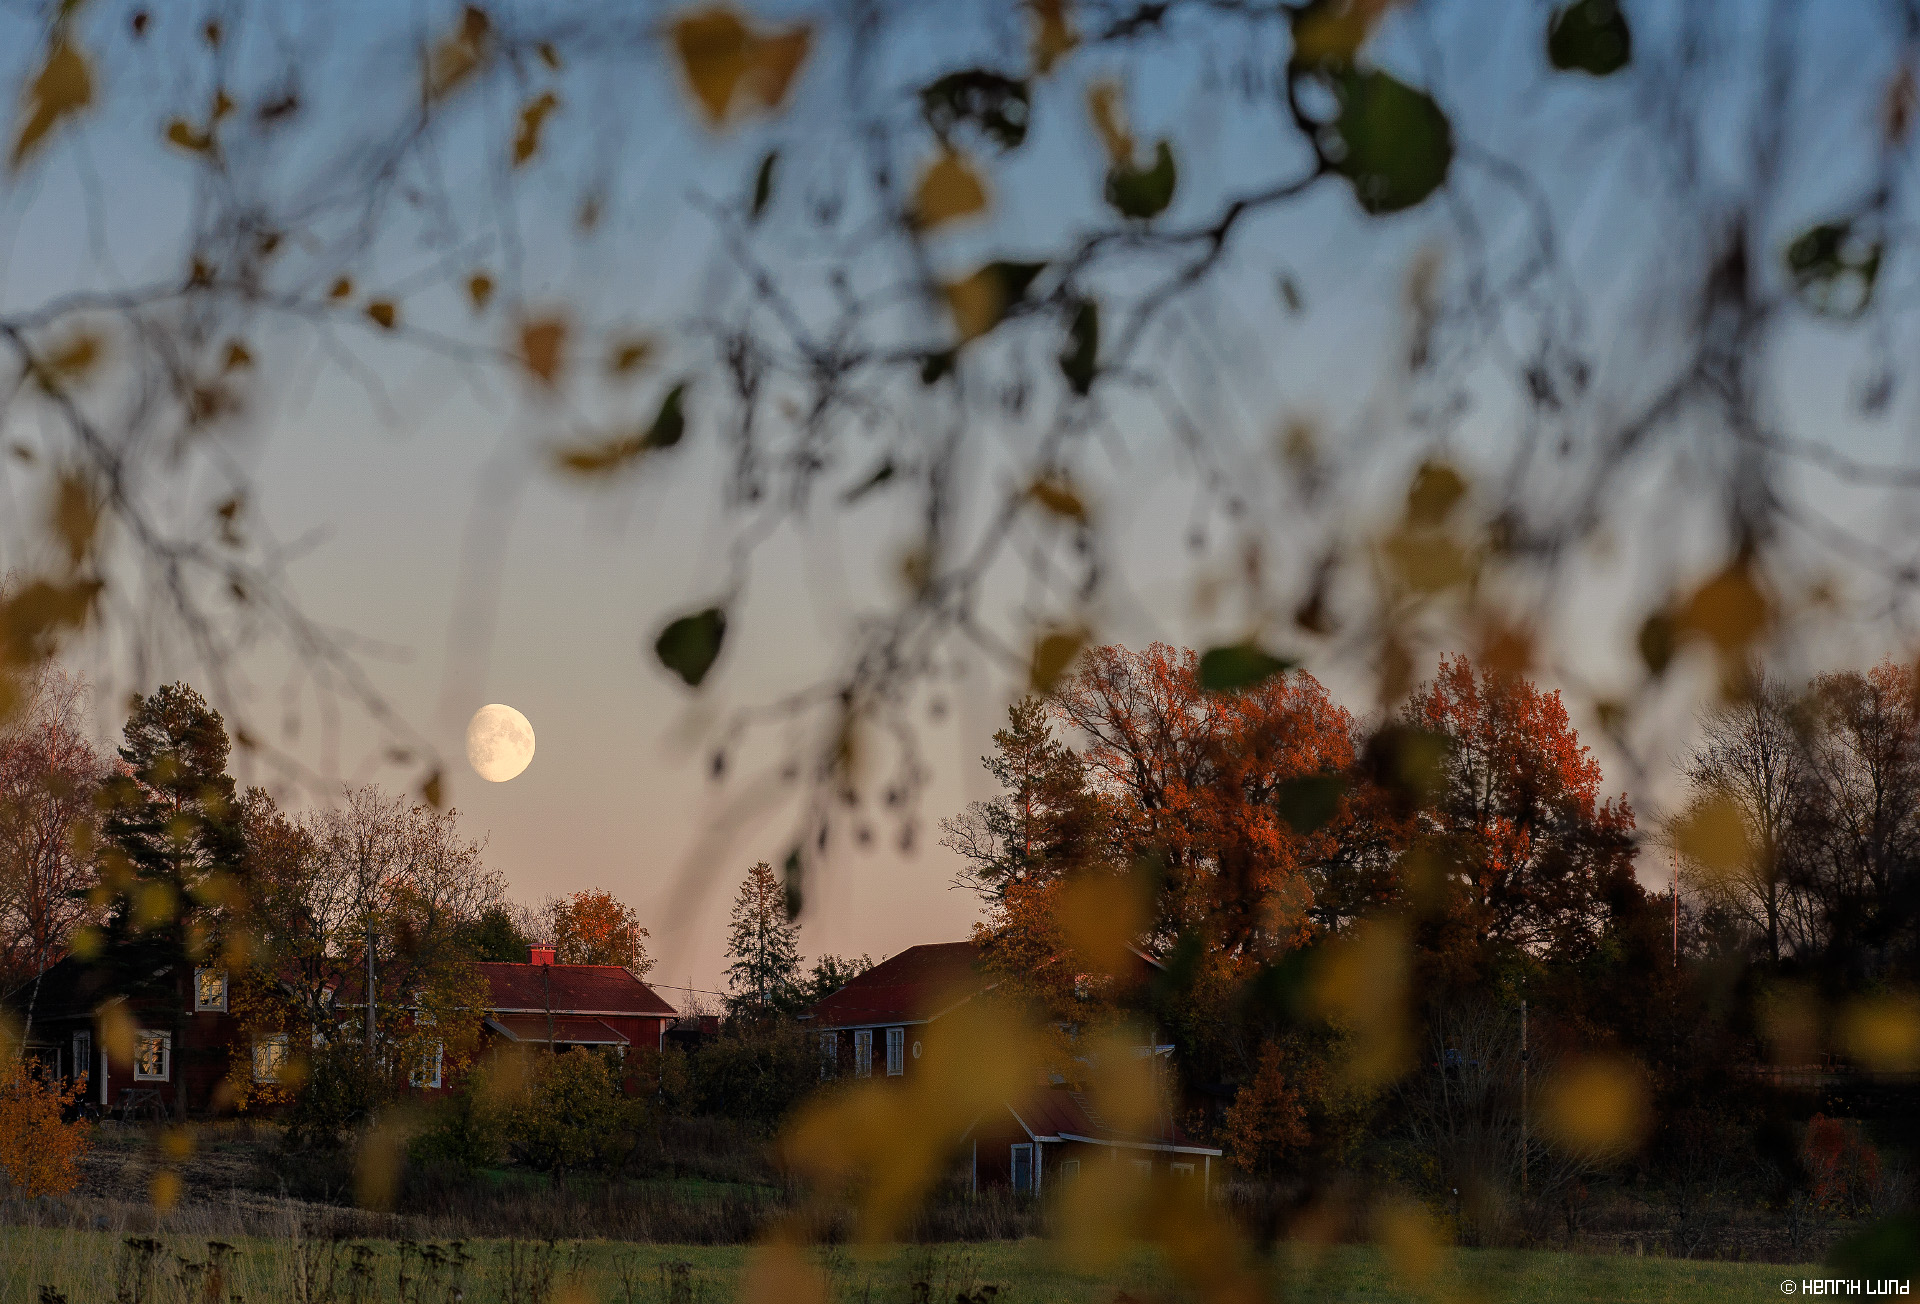 Moon rising over beautiful Marieberg Gård in Lappträsk, Finland, October, 2105.